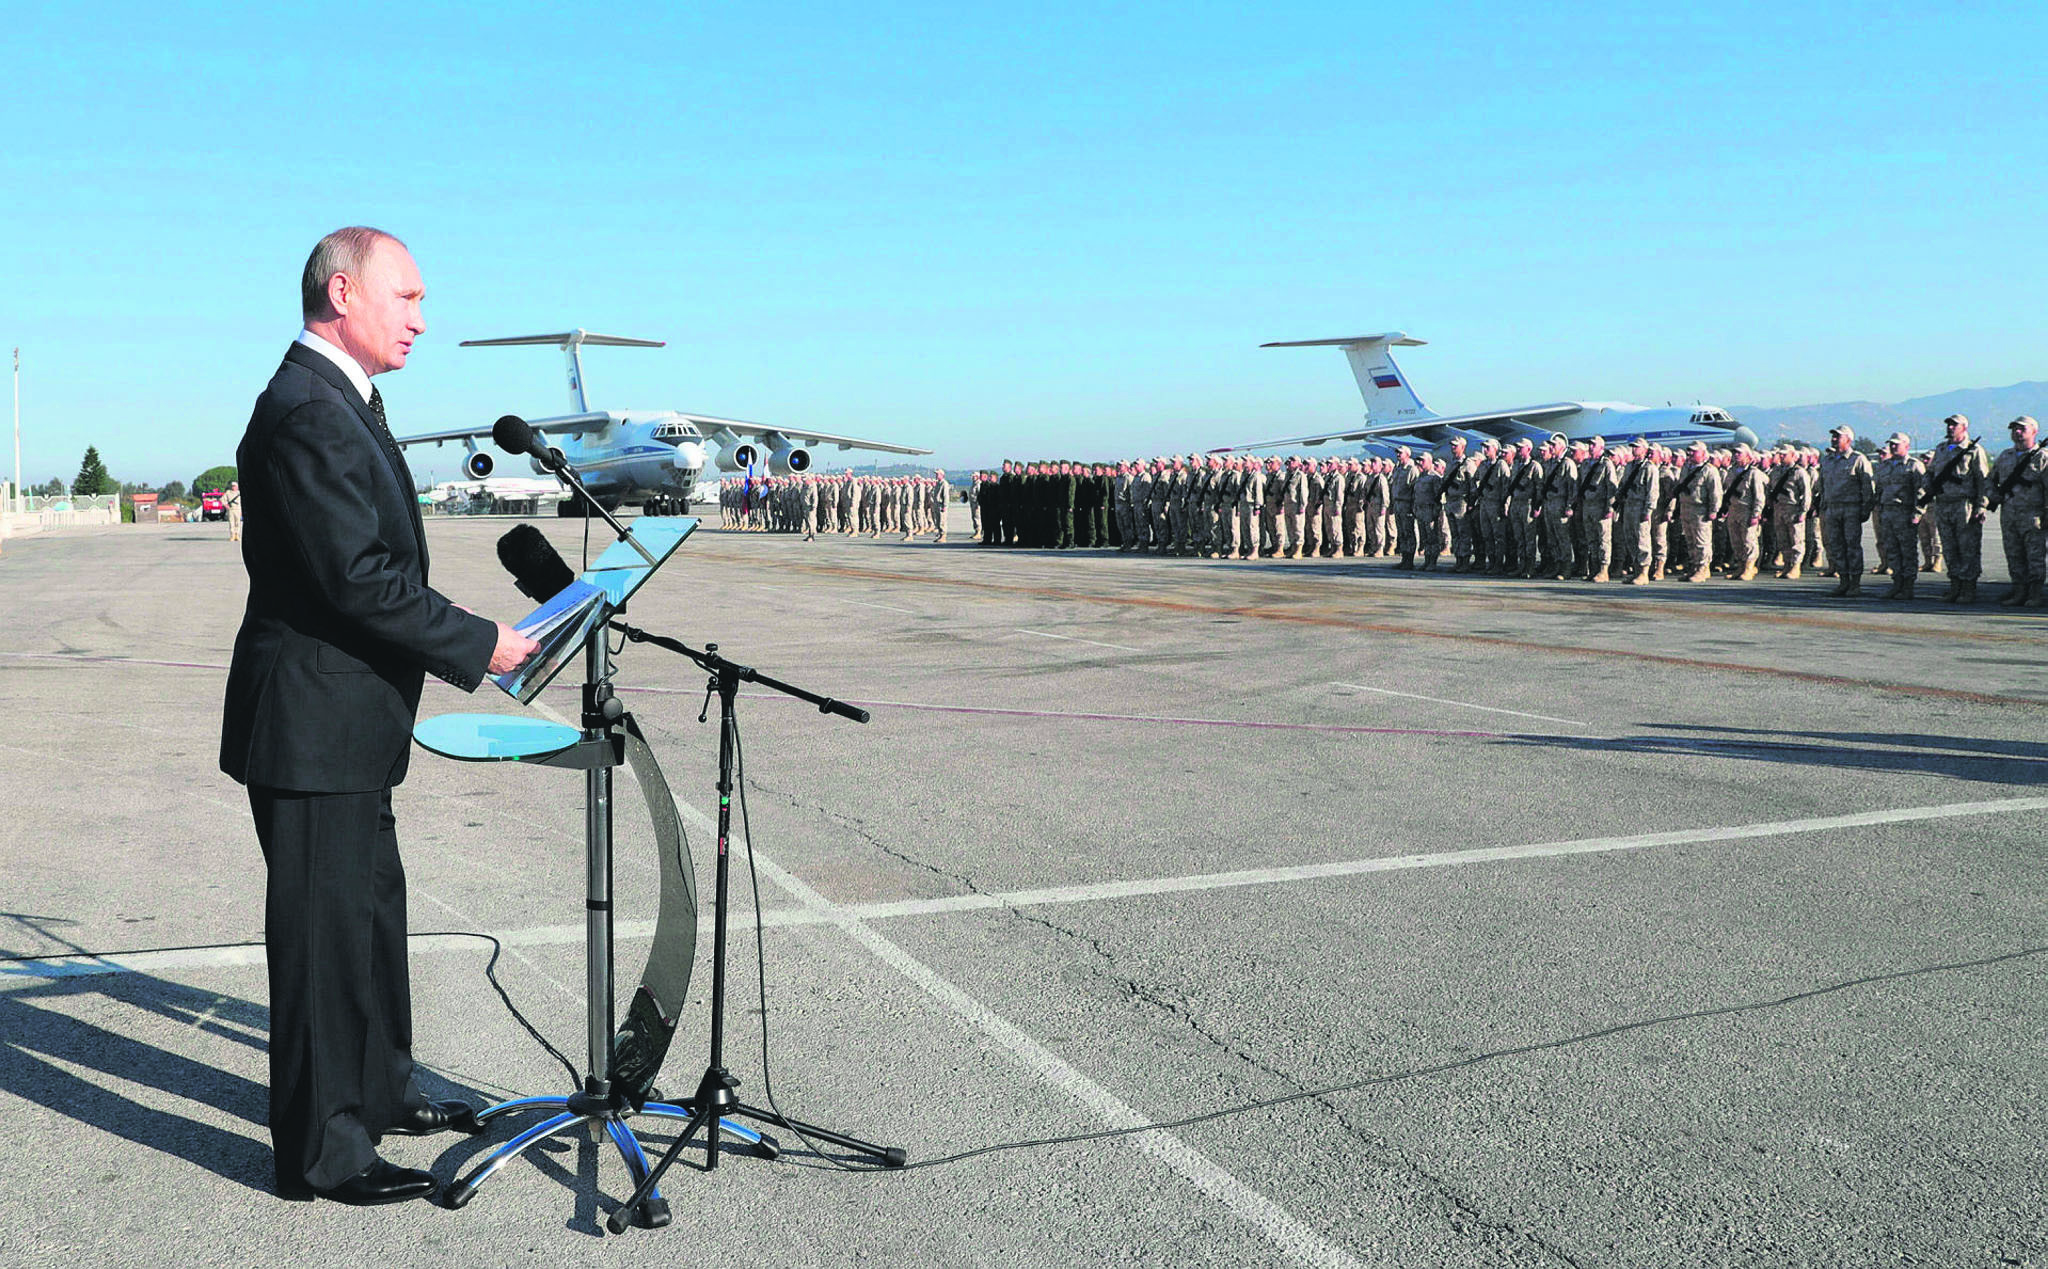 Russian President Putin addresses troops at Hemeimeem Air Base, Syria, Dec. 11.